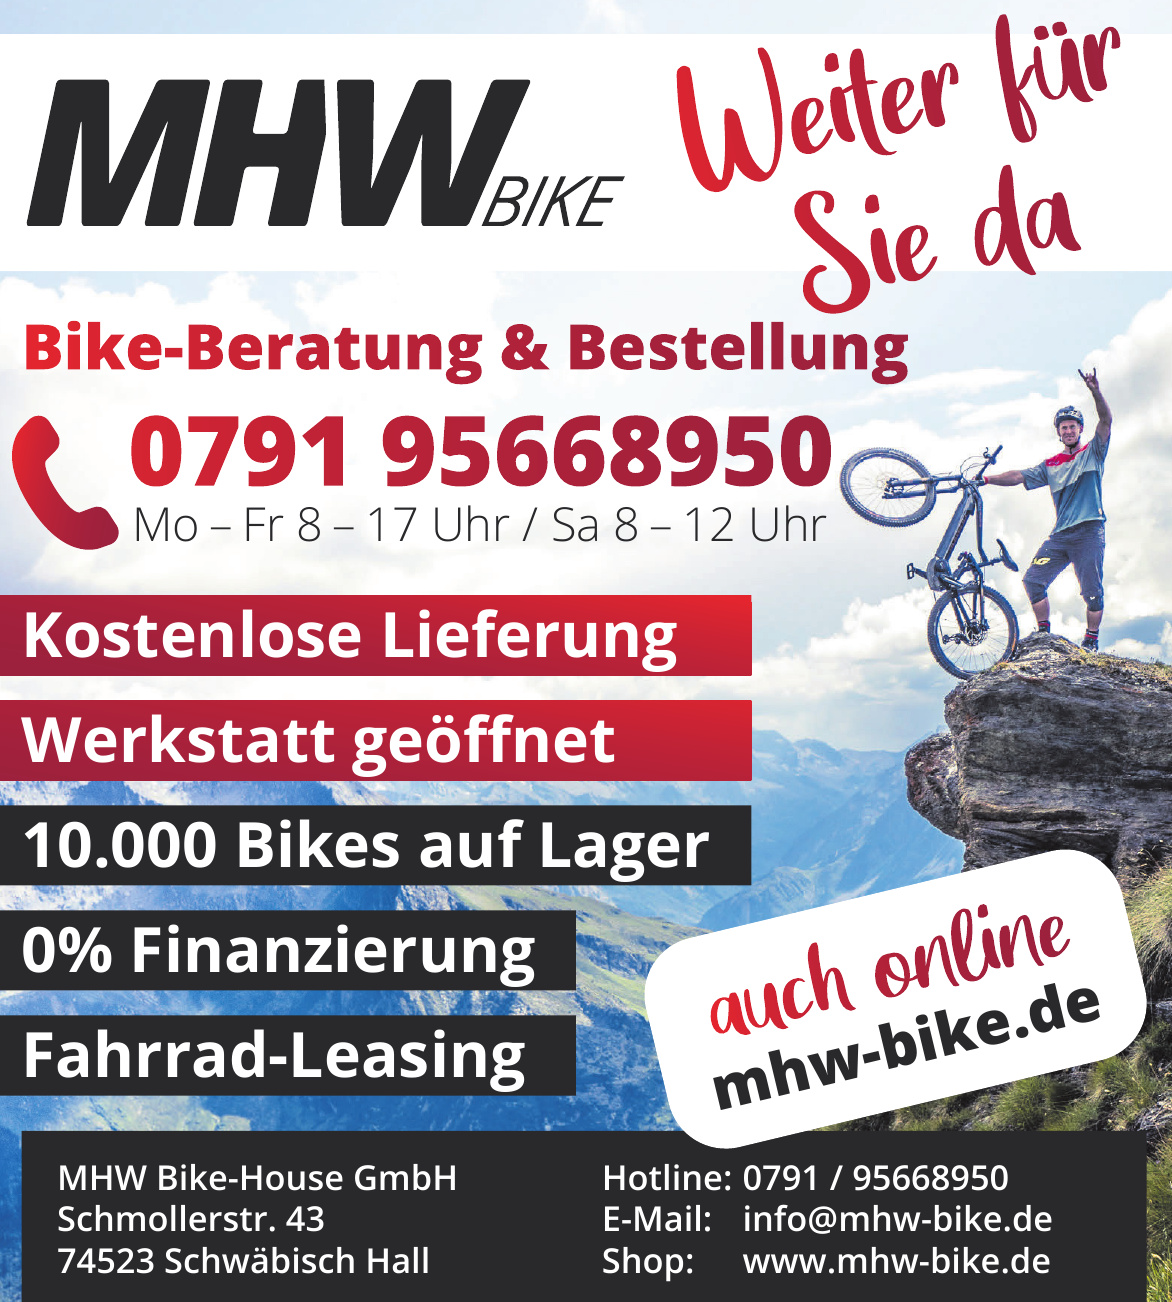 MHW Bike-House GmbH